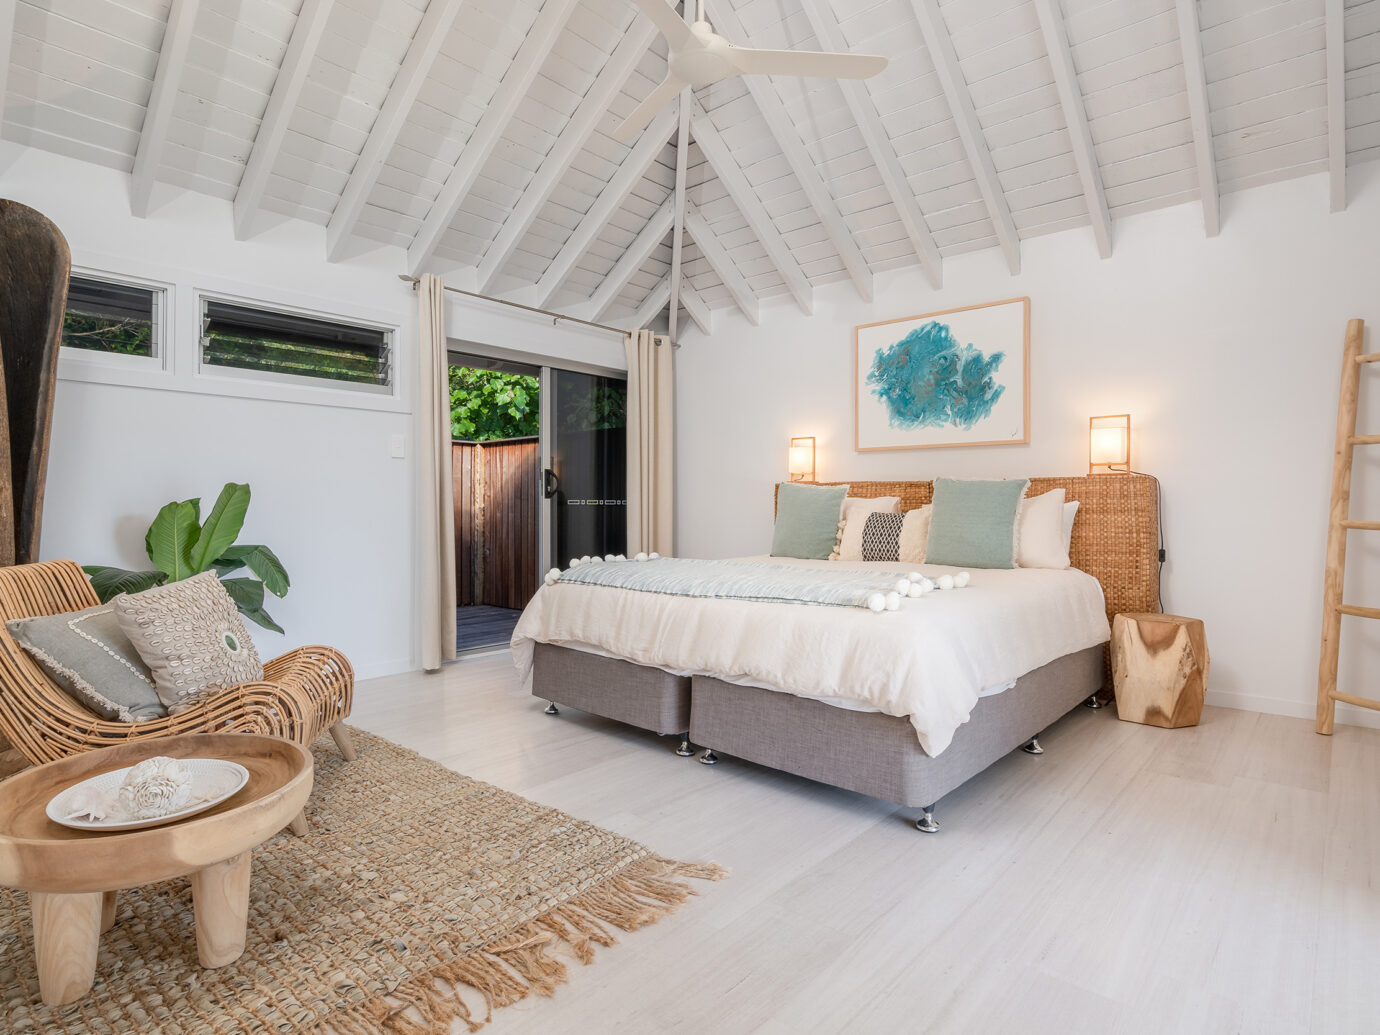 Bedroom at Elysian Retreat